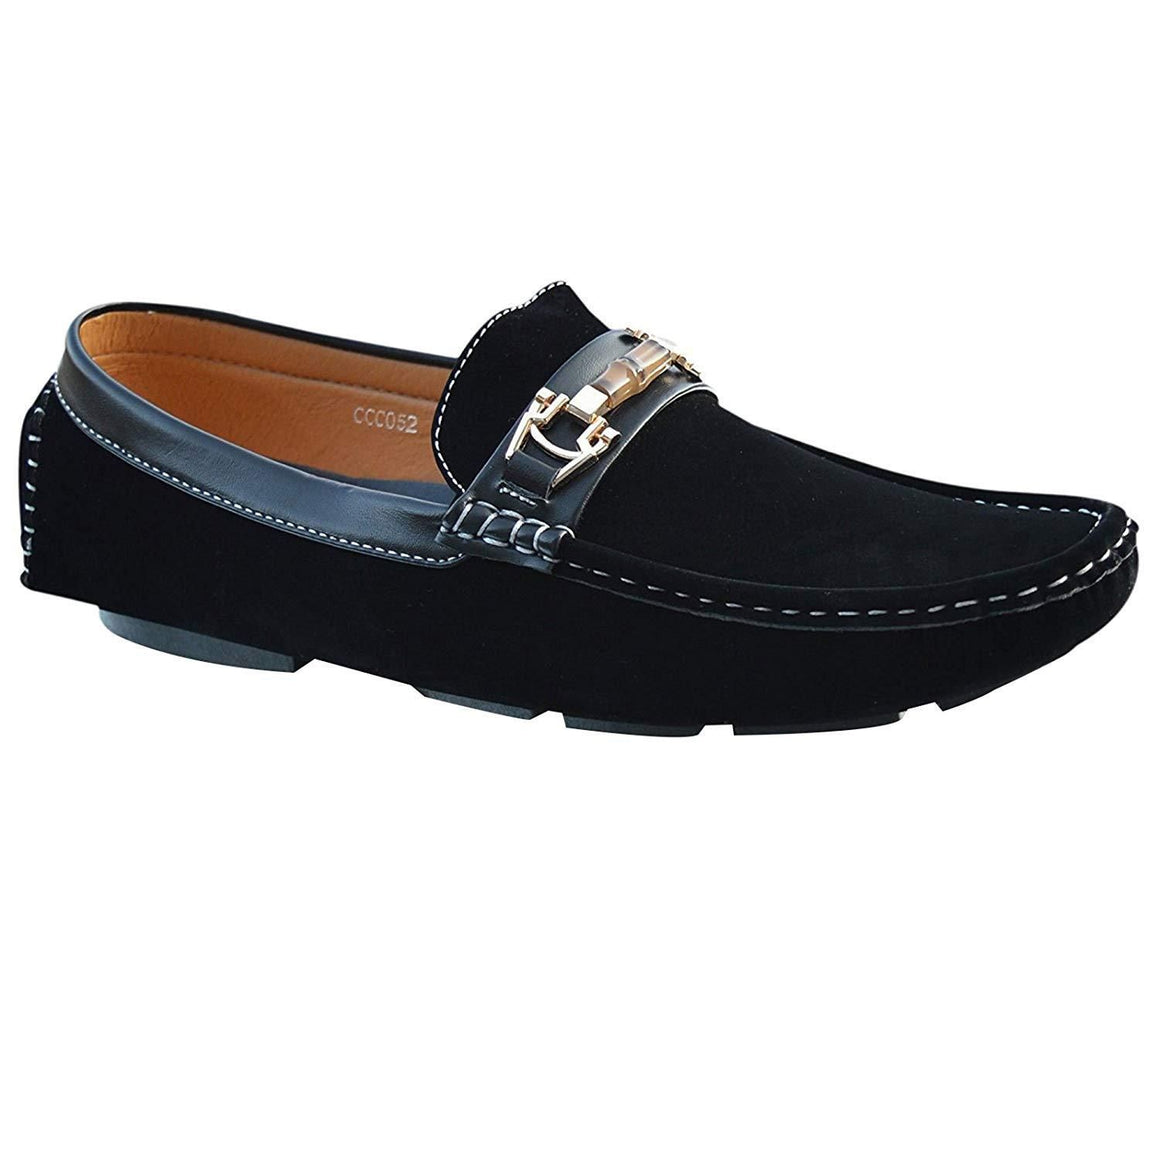 Mens Suede Loafers Casual Slip On Driving Moccasins Flat Shoes